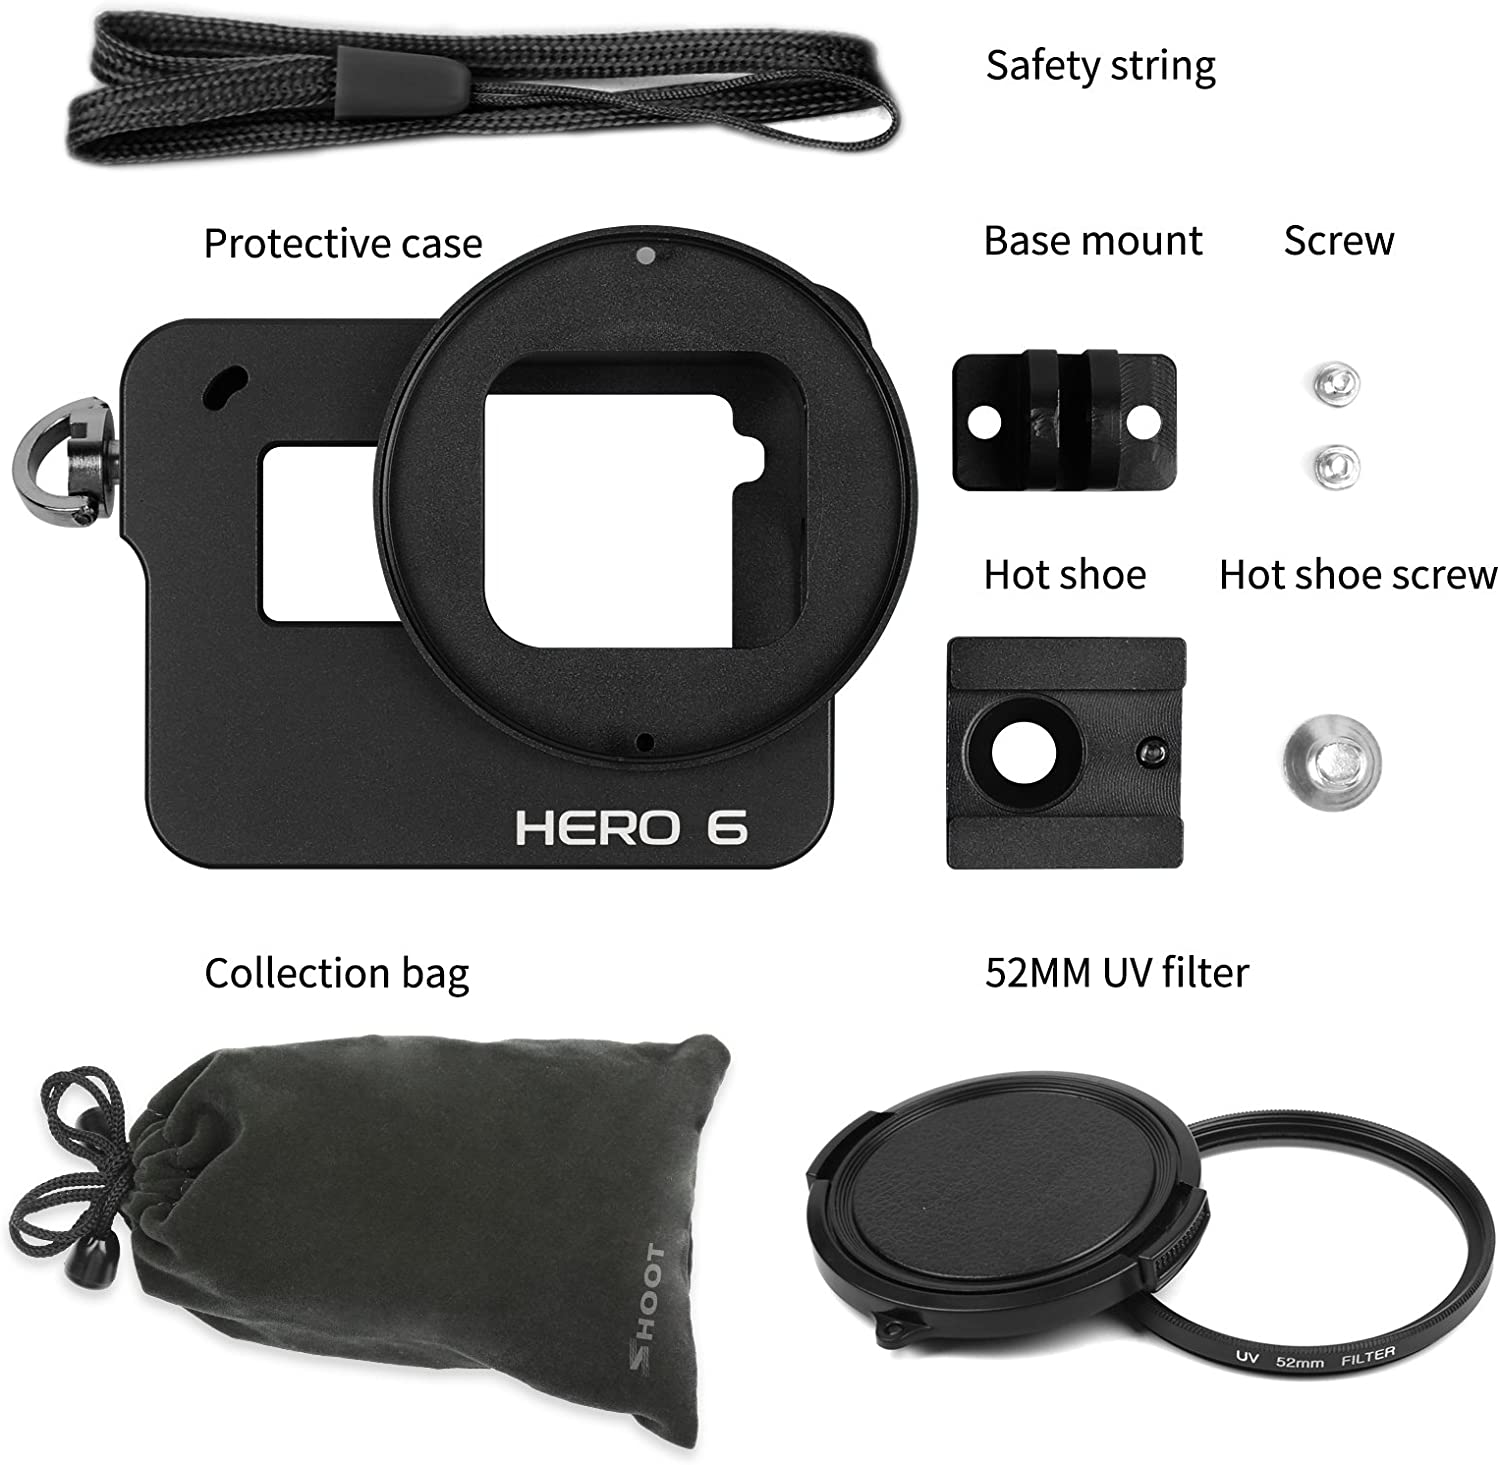 SHOOT Aluminium Alloy Skeleton Protective Housing Metal Case with Back Cover and 52mm UV Filter for GoPro Hero 6 Action Camera